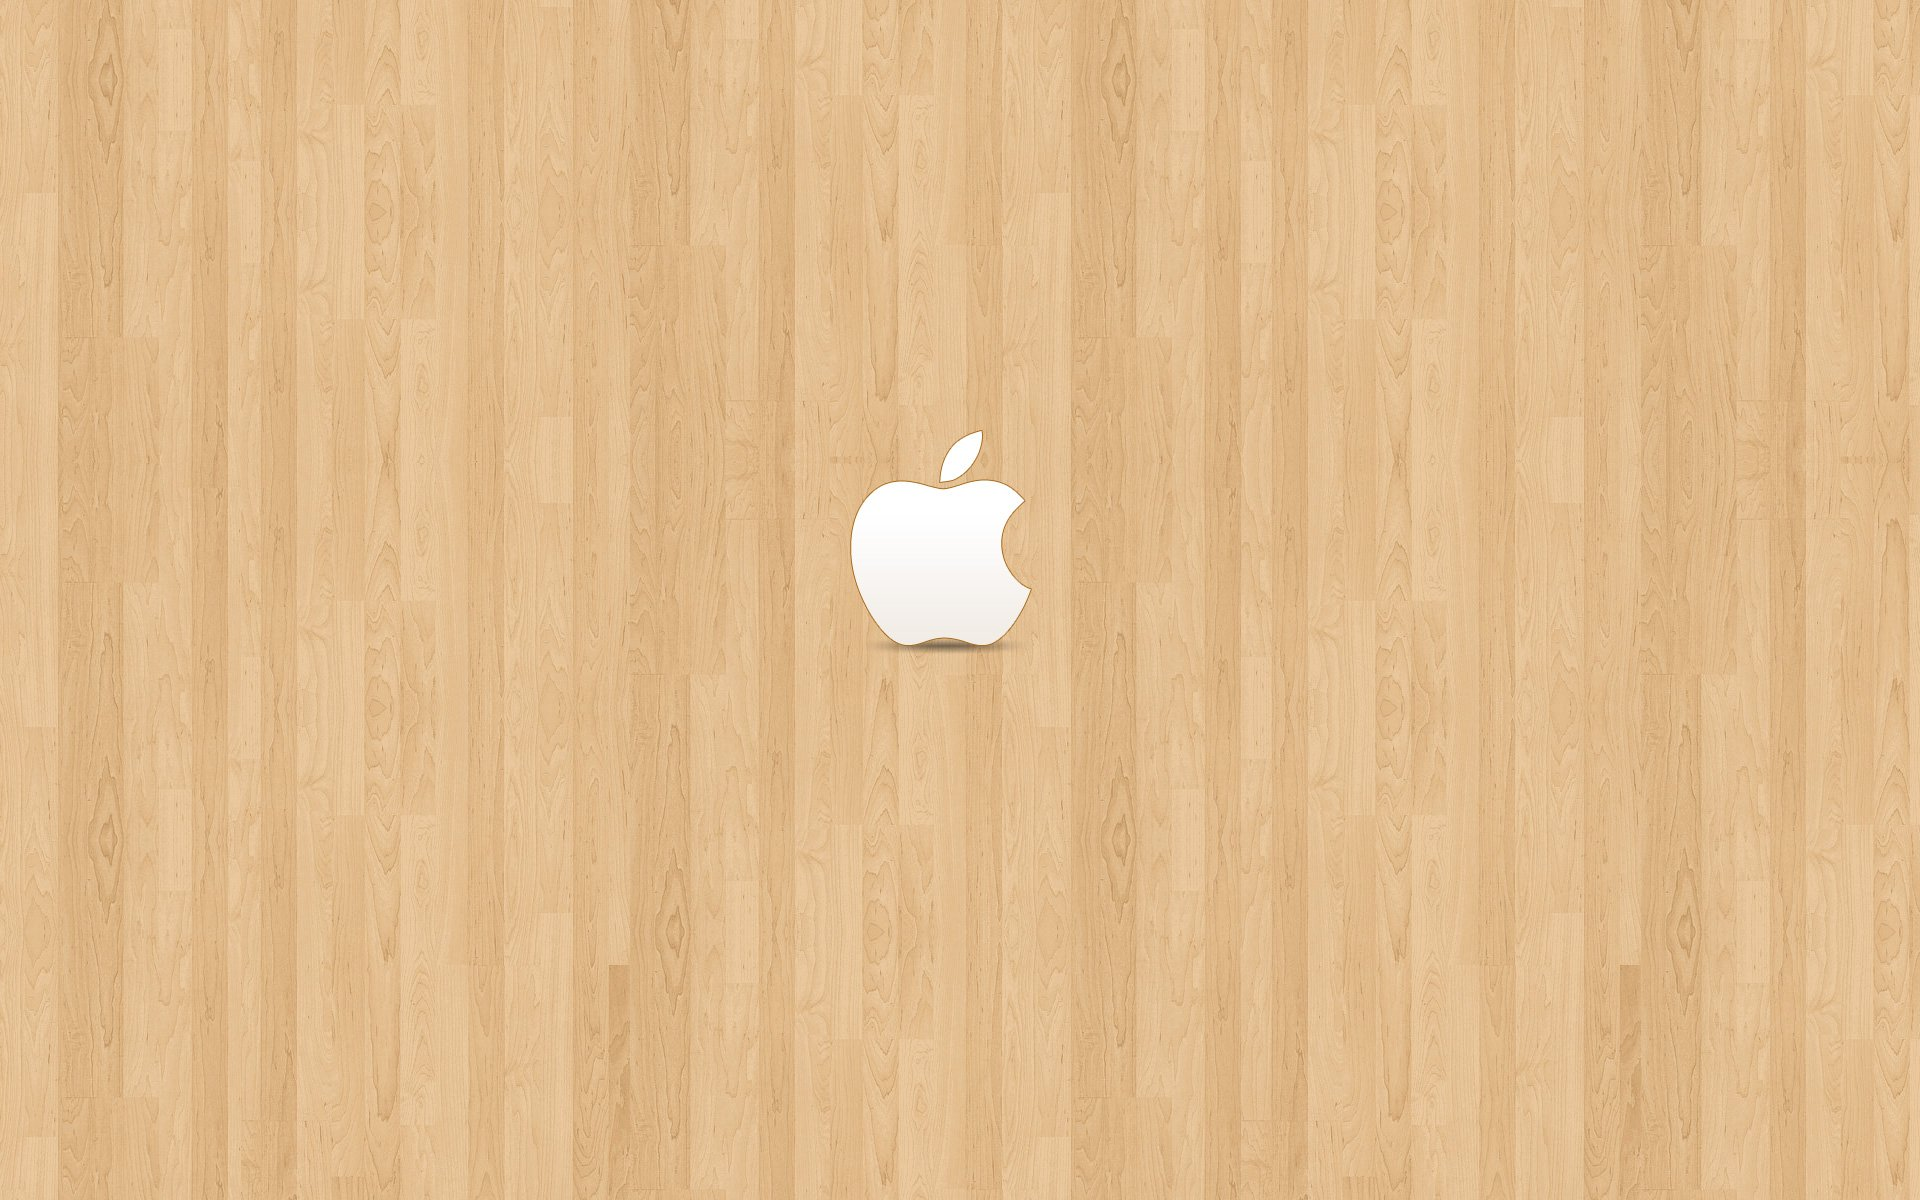 Apple Wood Desktop Wallpaper Mobile Theme Iphone Form